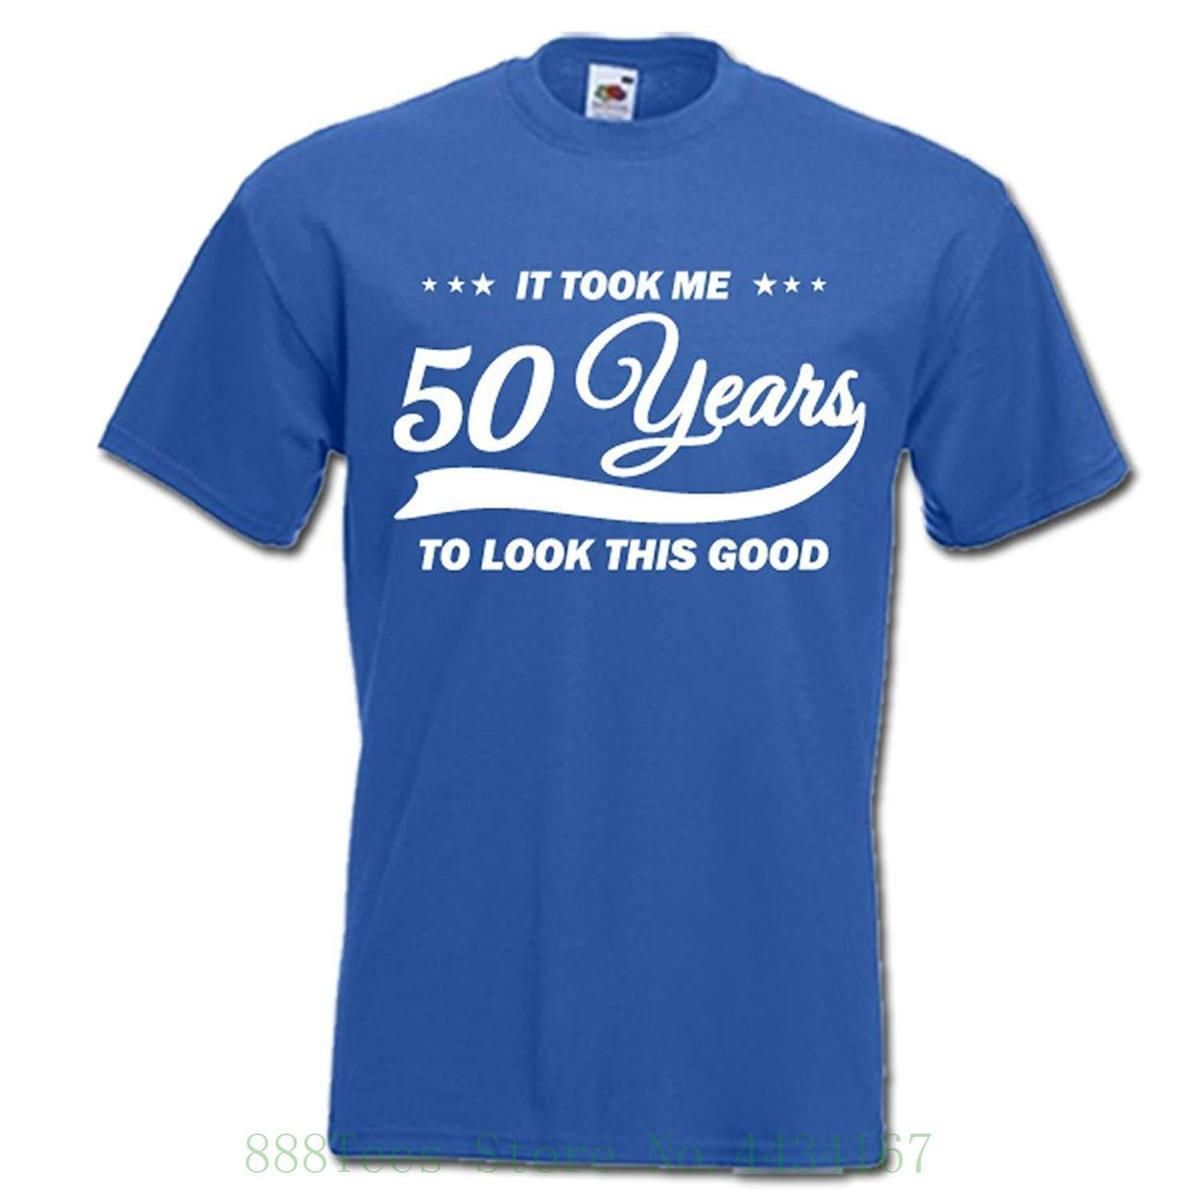 It Took Me 50 Years To Look This Good 50th Birthday Gift Idea Mens Womens T Shirt Fashion Designer Graphic Shirts From